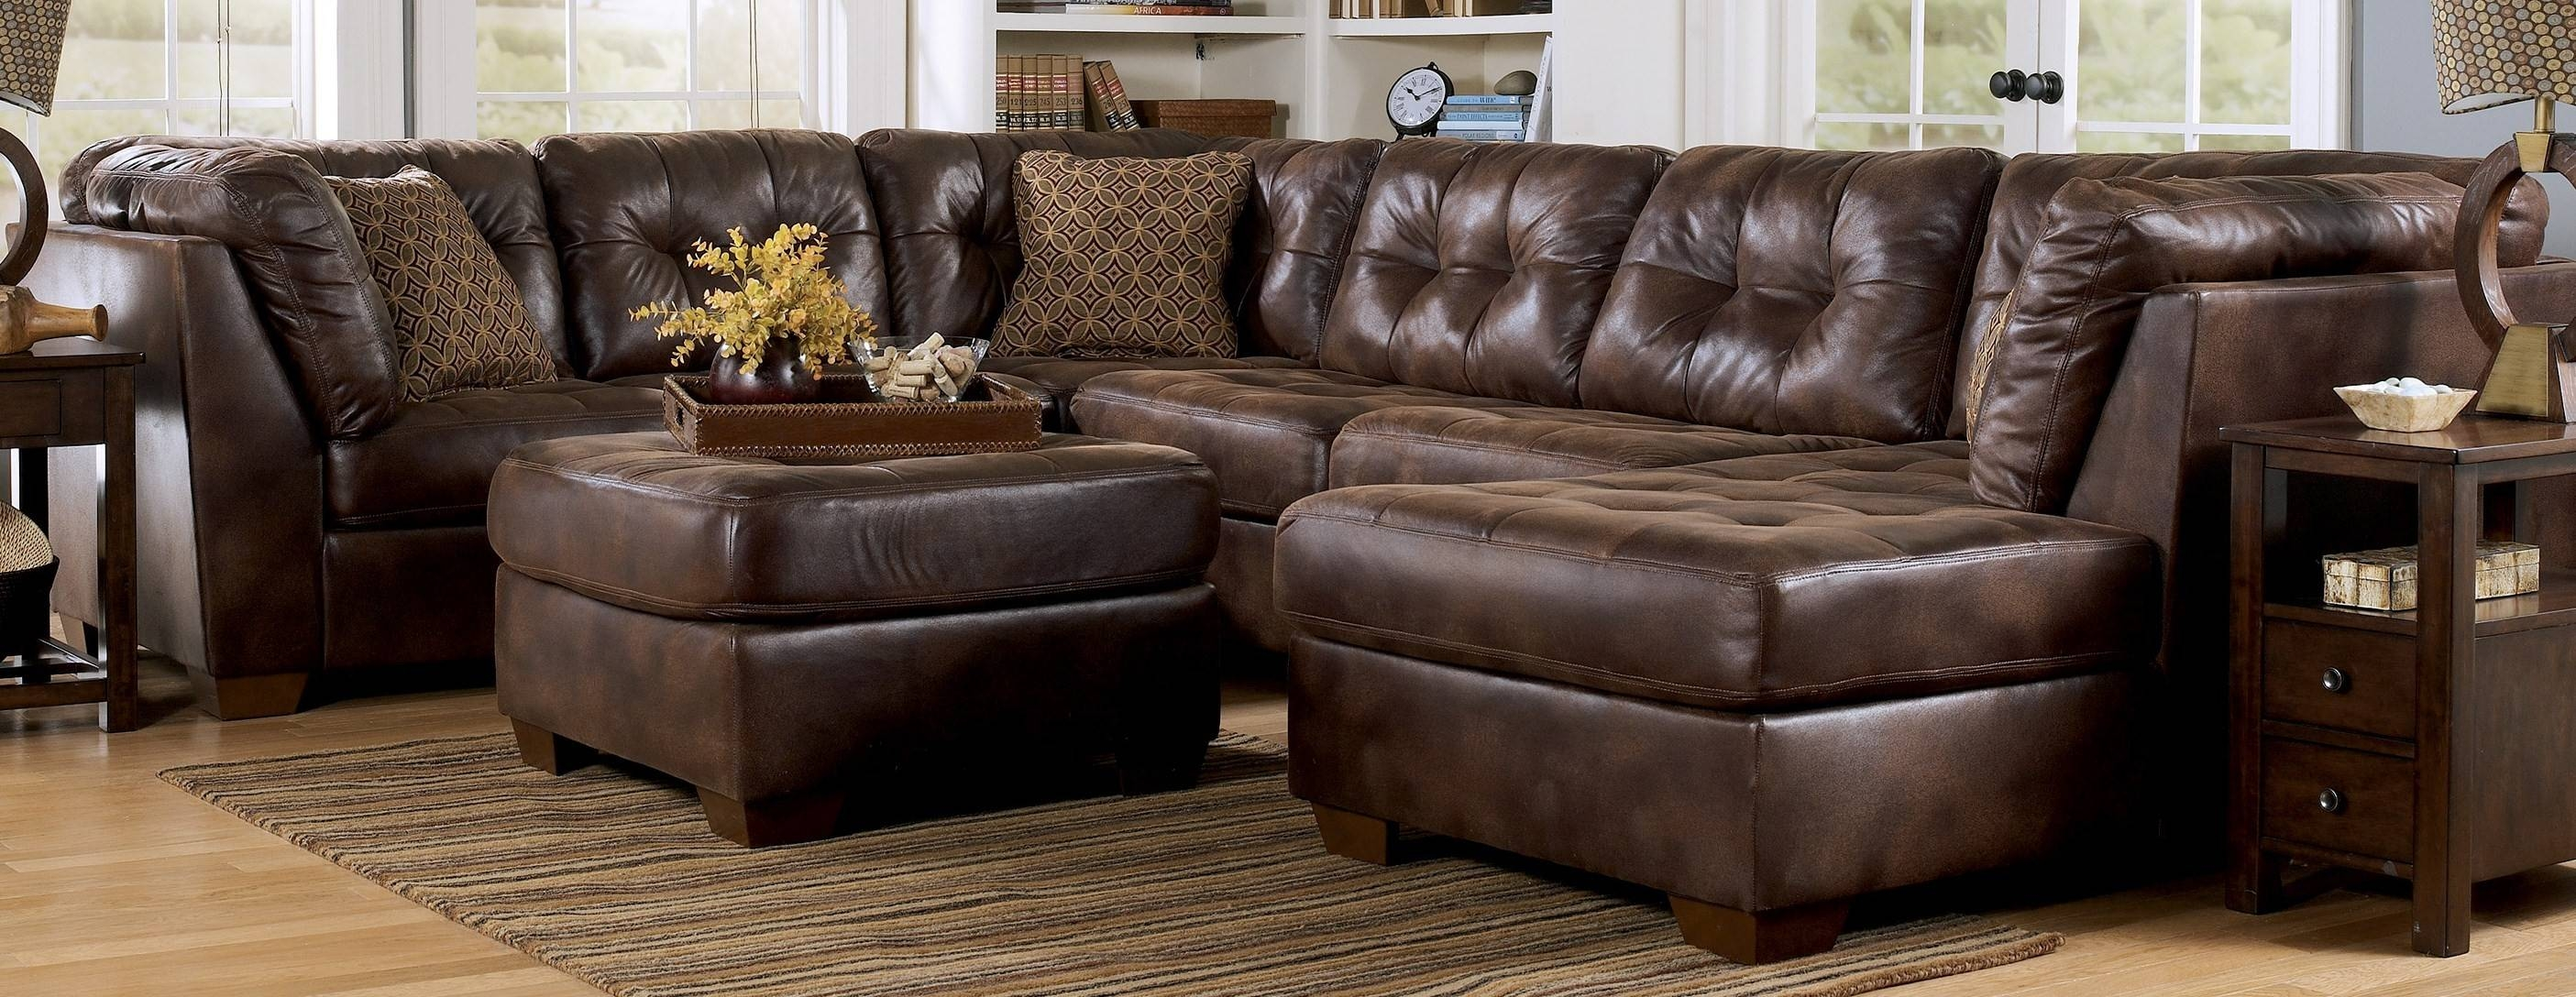 Leather Sectional Sleeper Sofa With Chaise – Tourdecarroll Pertaining To Sectional Sleeper Sofas With Chaise (View 12 of 30)